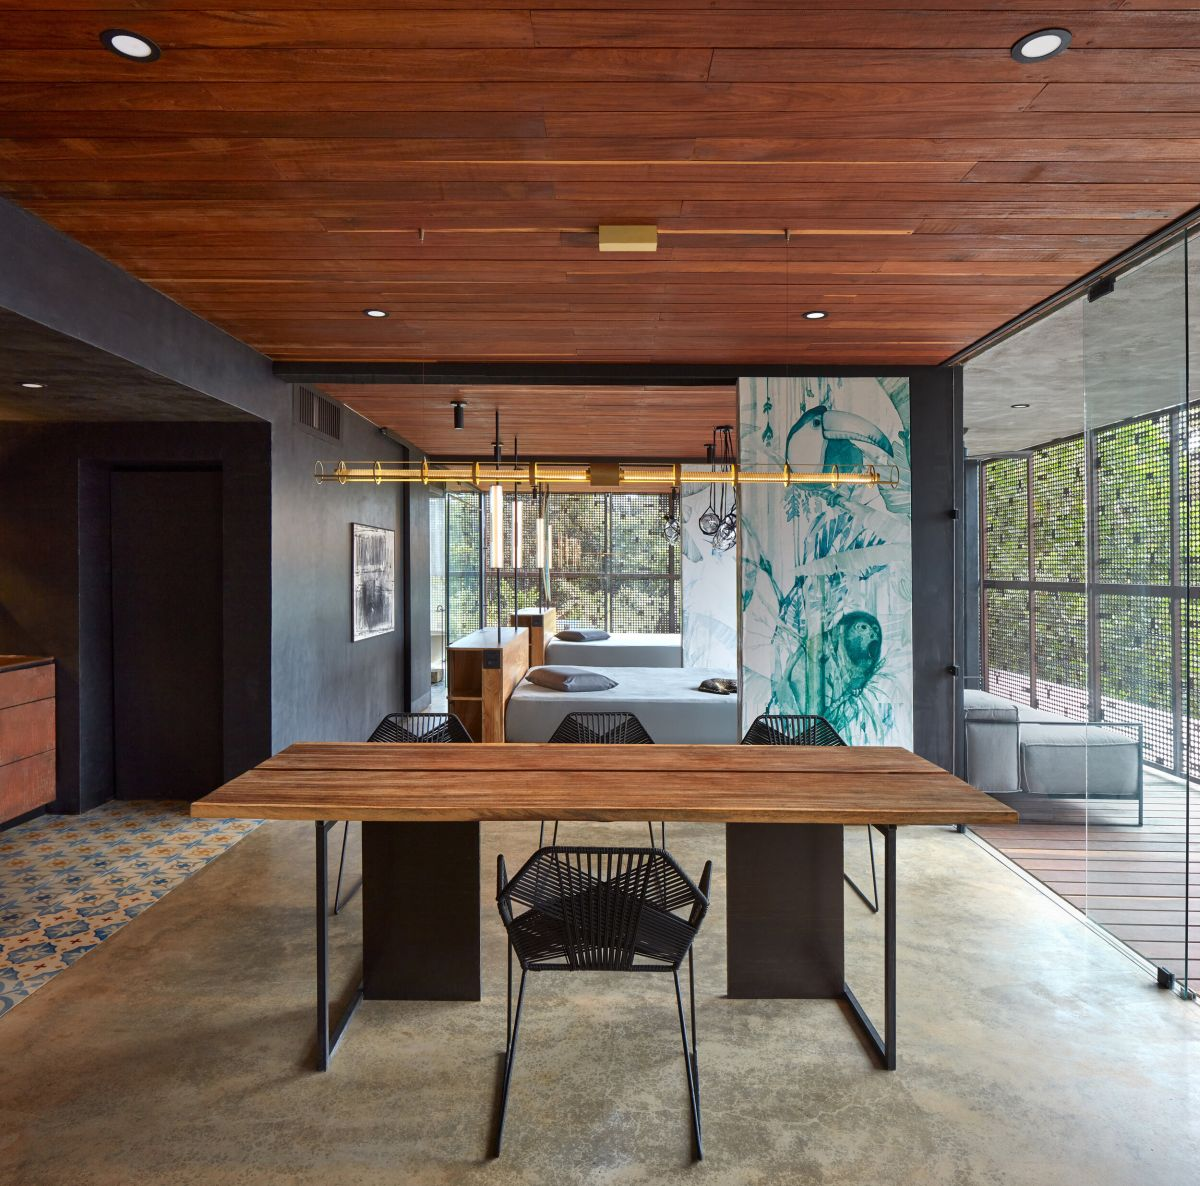 The dining space is done with black chairs and a simple wooden dining table